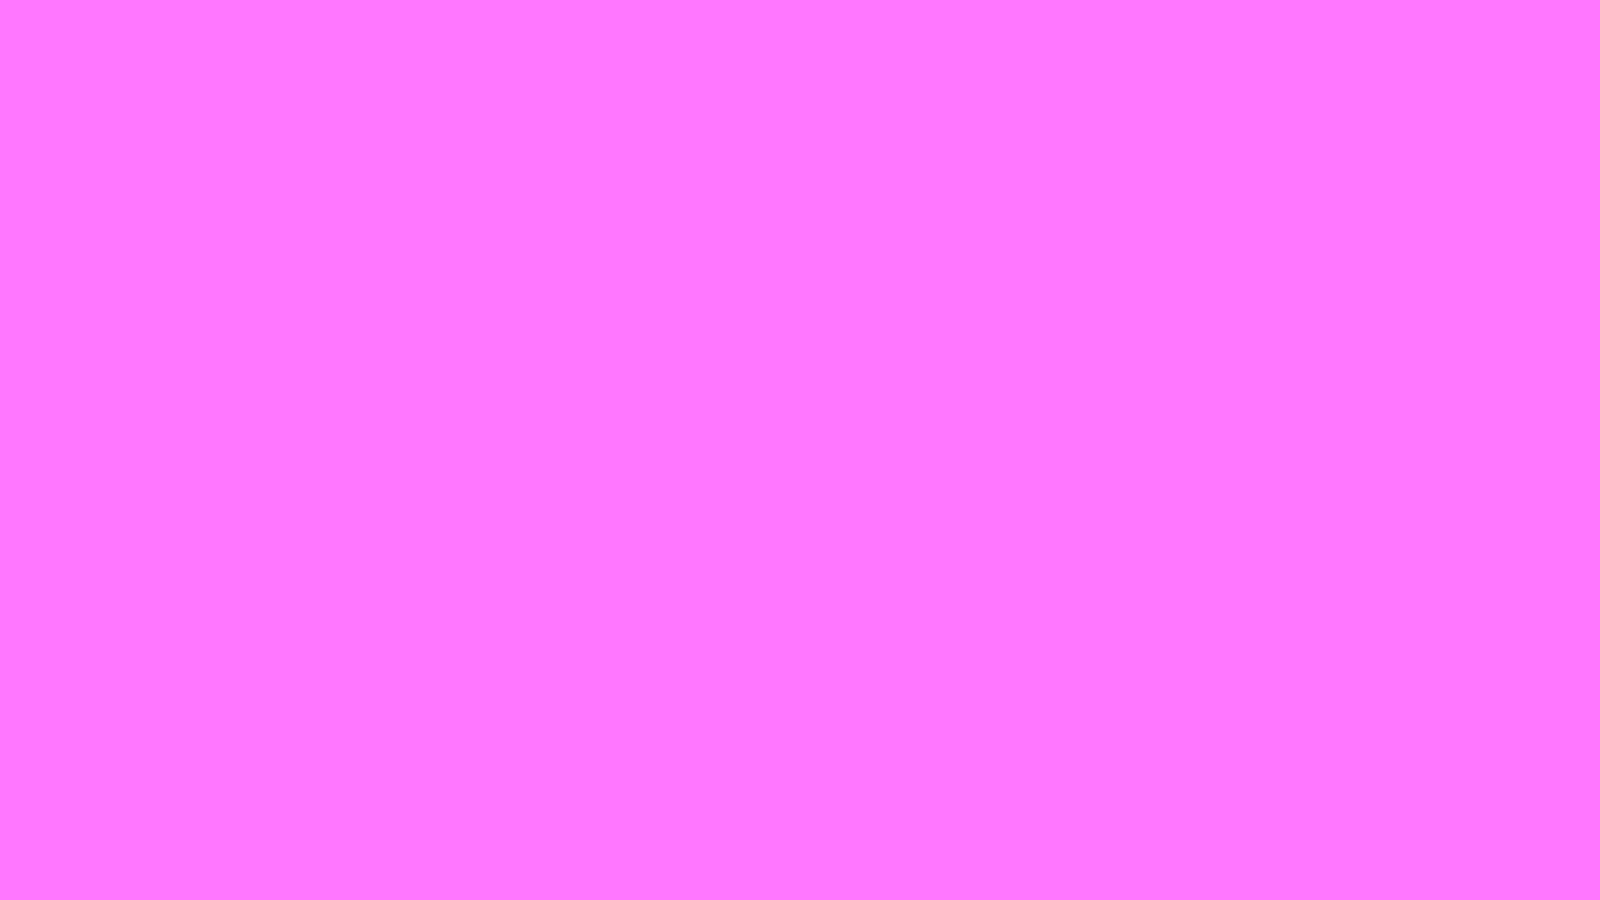 1600x900 Fuchsia Pink Solid Color Background